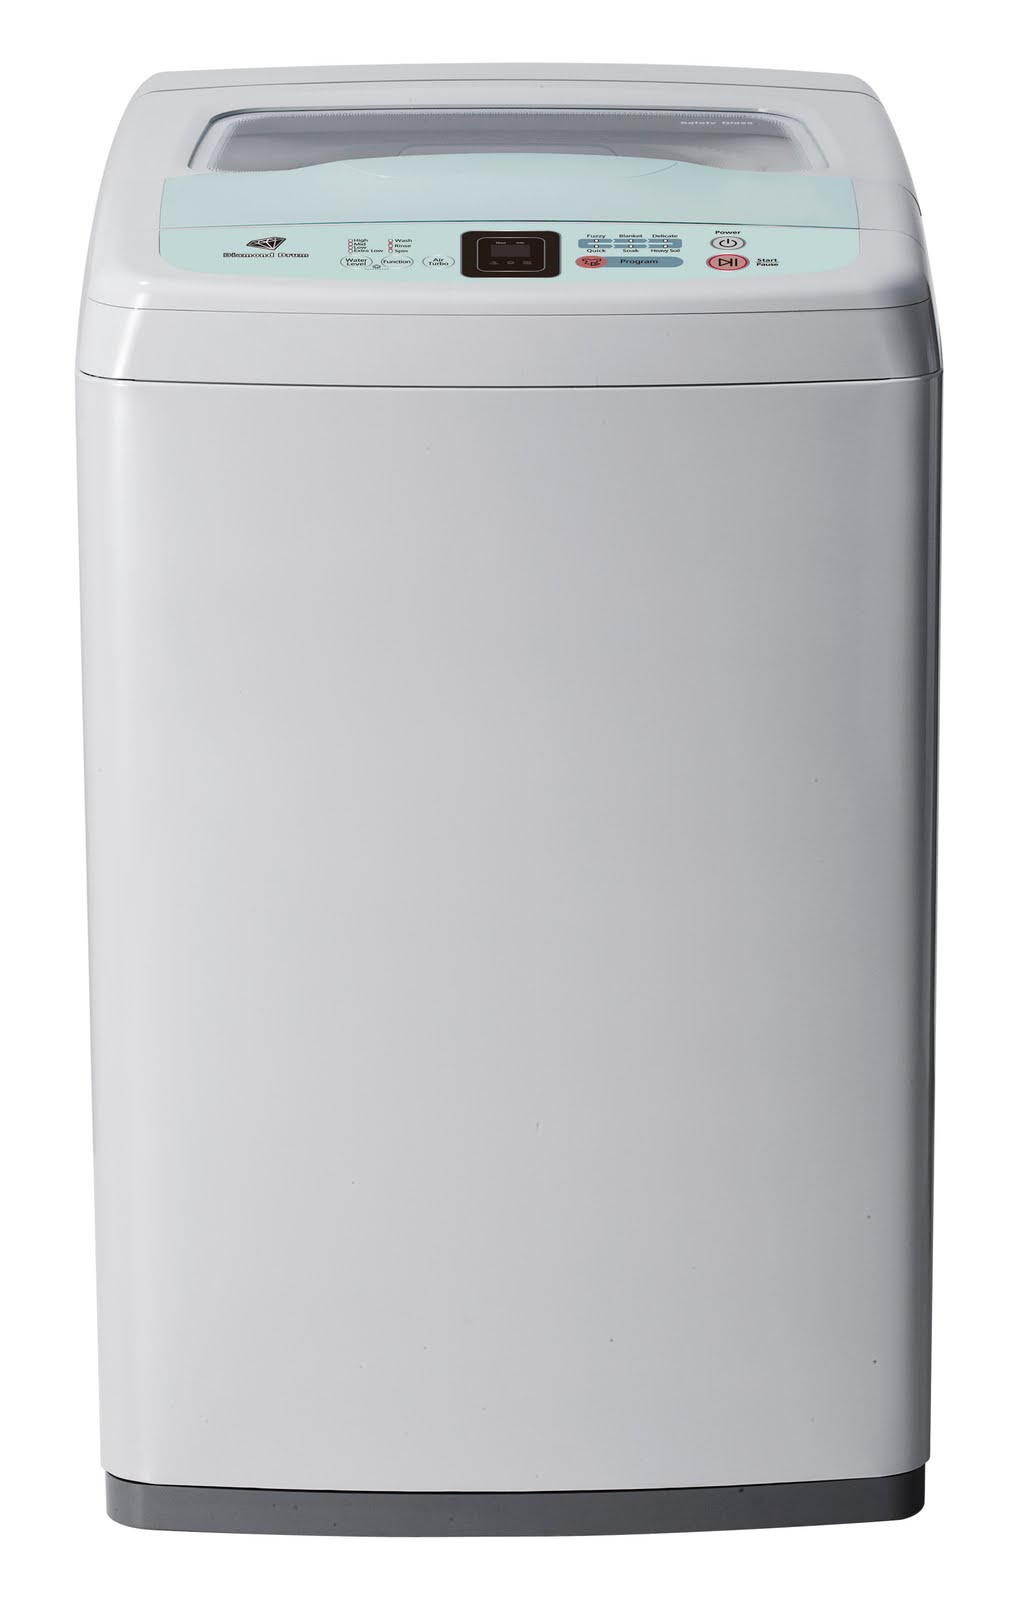 Samsung Washing Machine ~ Samsung washing machine discount the web magazine